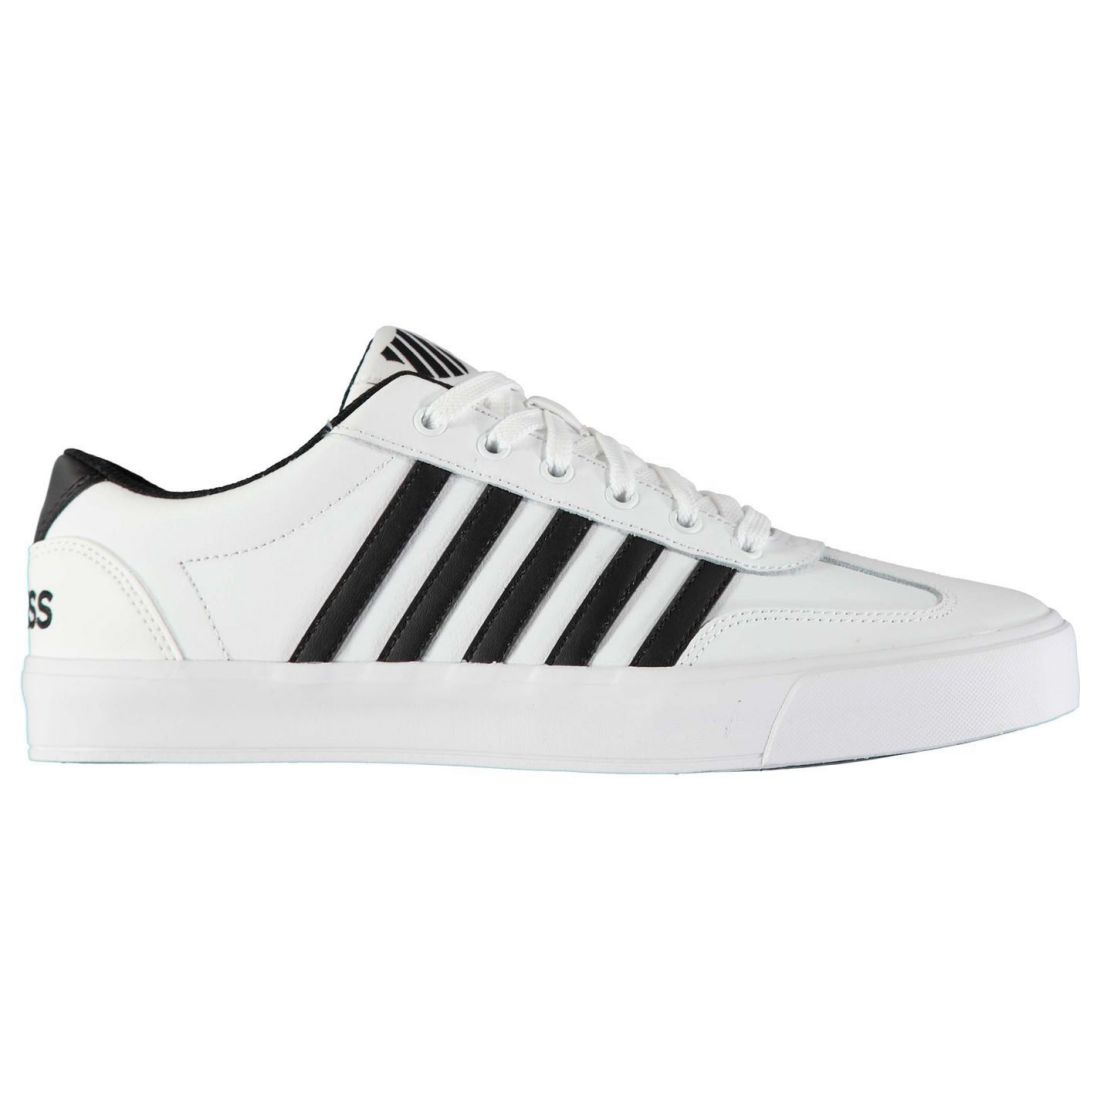 Details about K Swiss Mens Addison Vulc Trainers Court Lace Up Padded Ankle Collar Tongue